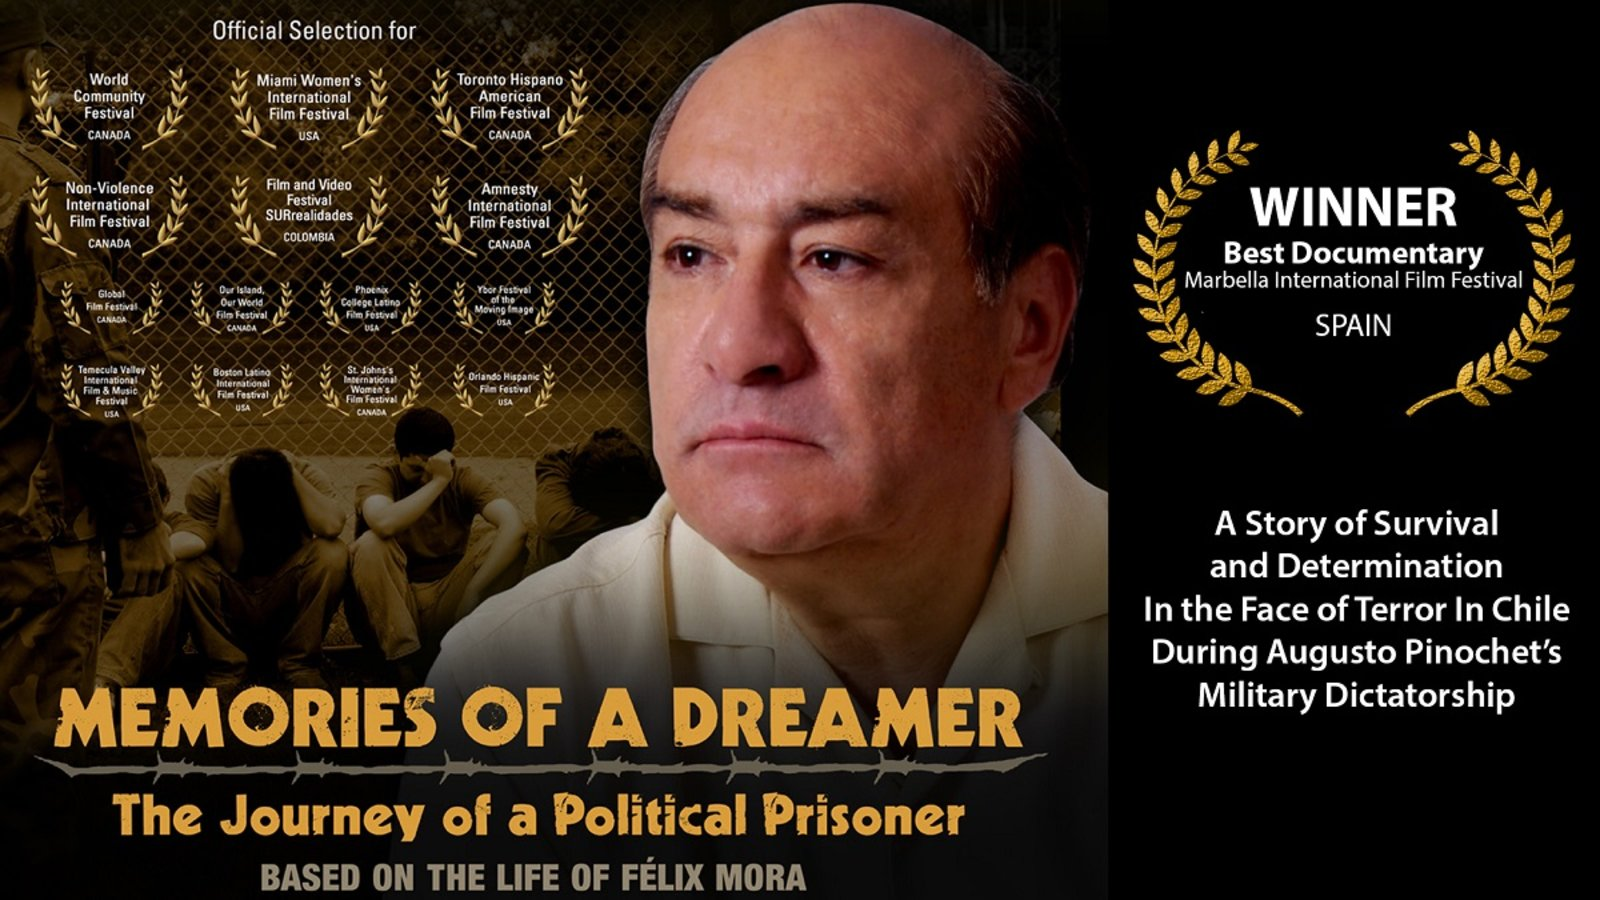 Memories of a Dreamer - The Journies of a Political Prisoner